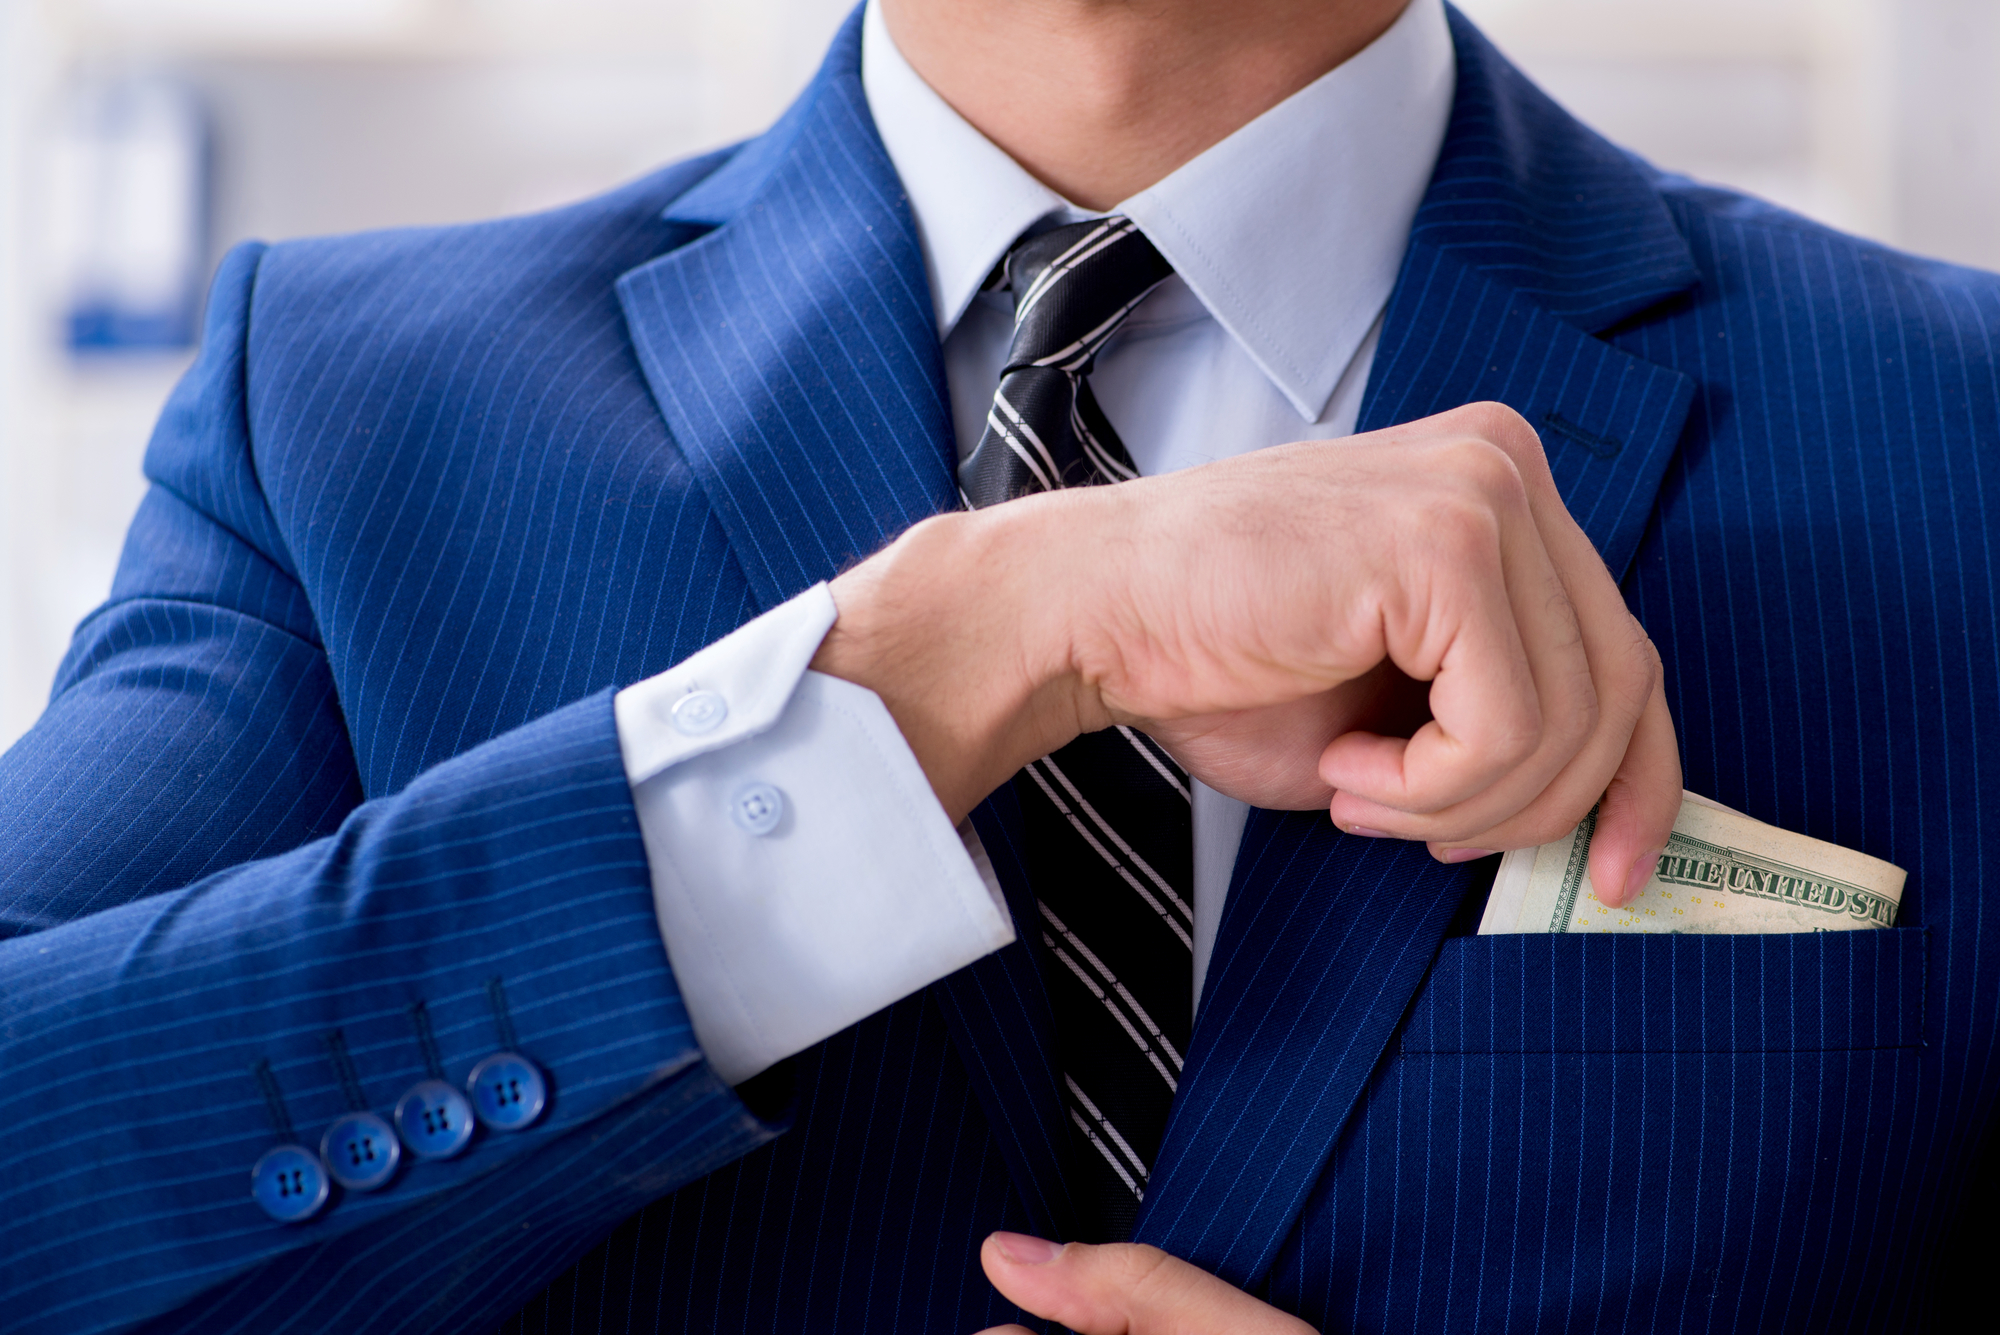 Employee theft and the small business